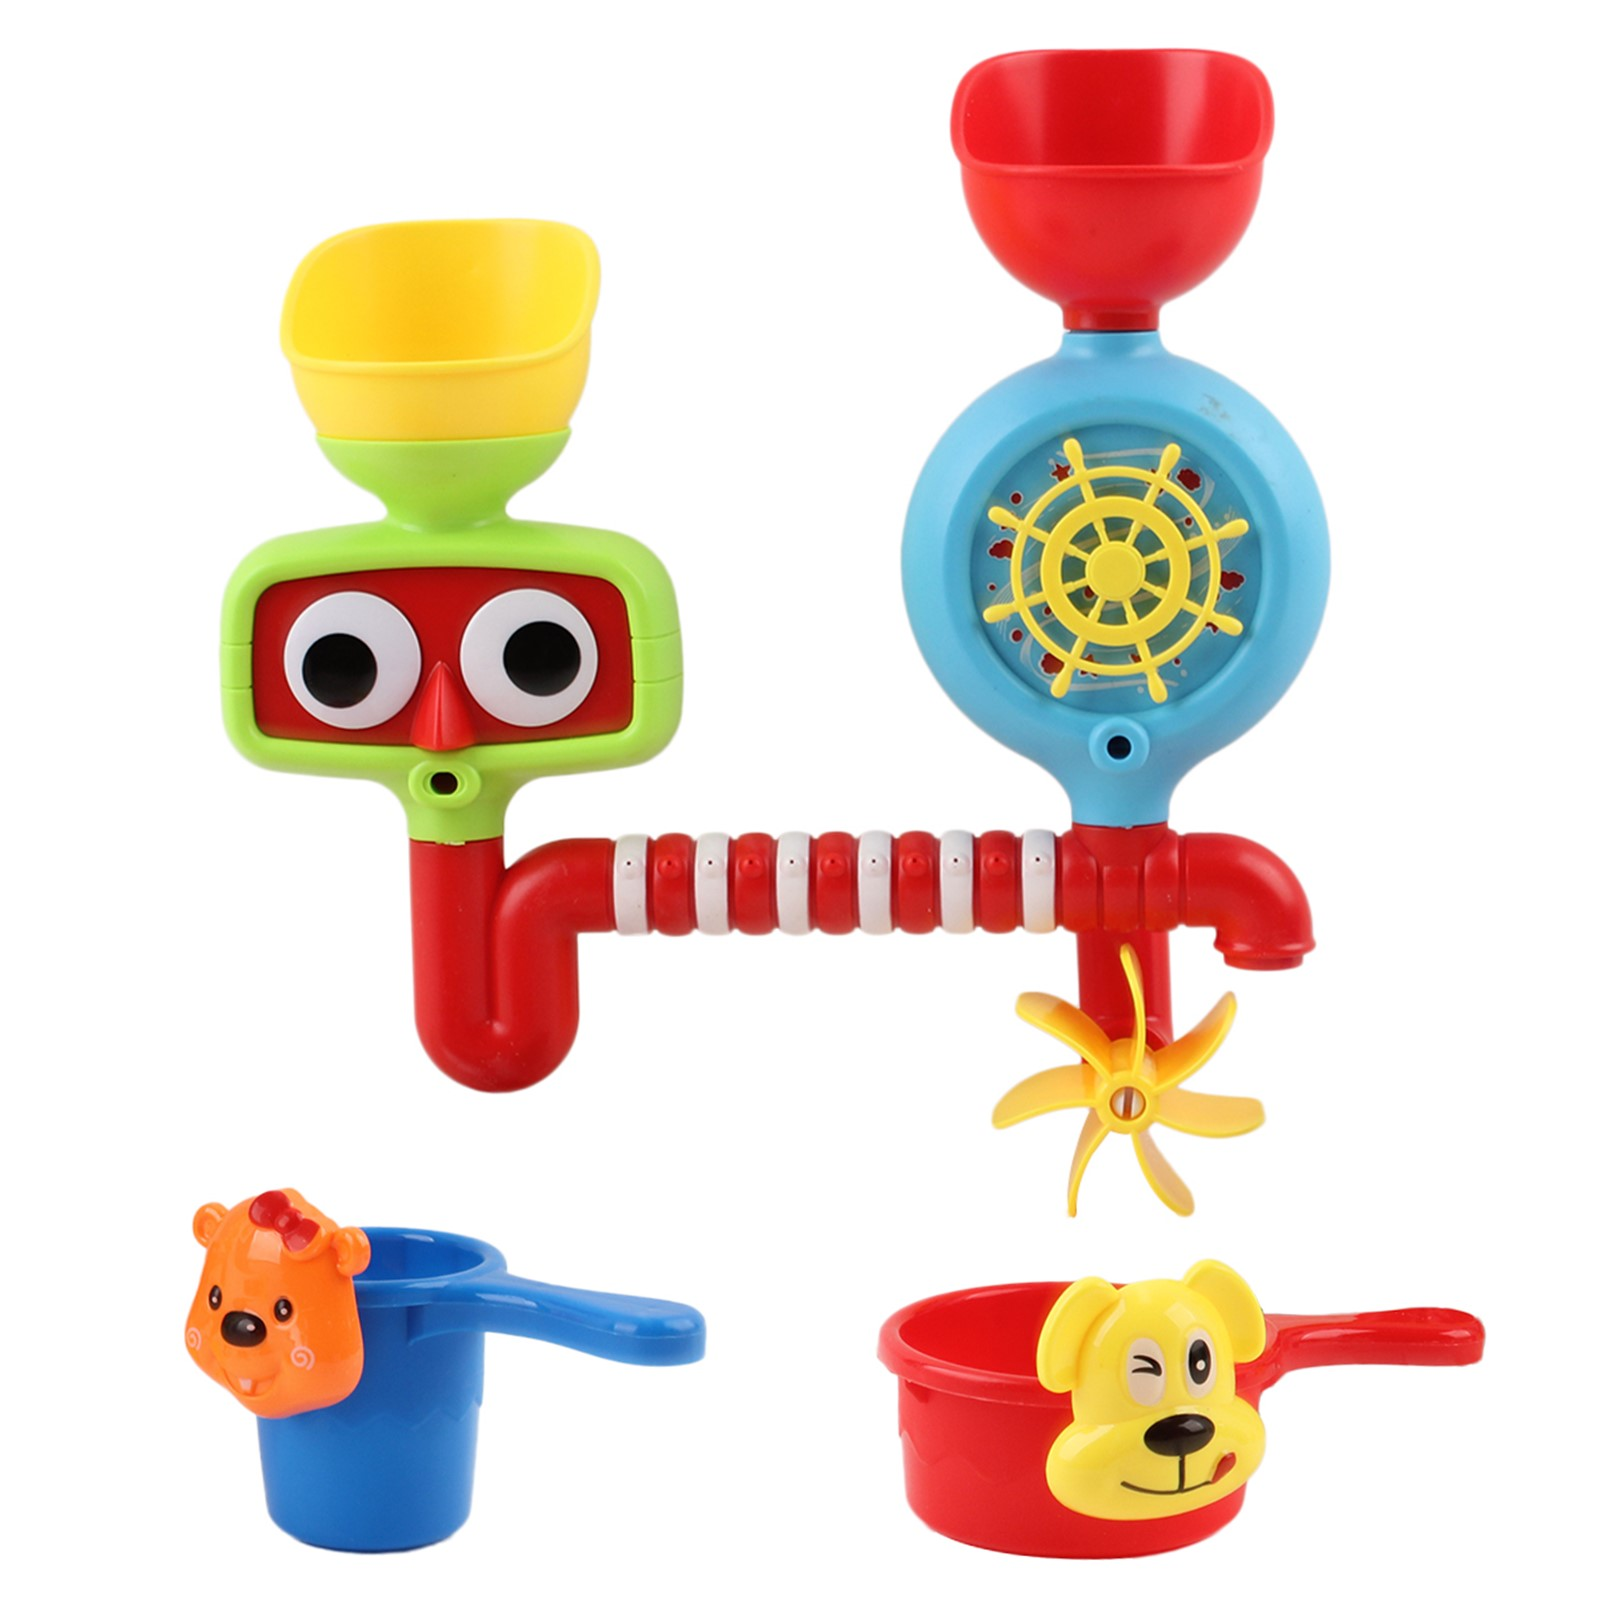 Bath Toy Set For Toddlers Baby And Young Children Perfect For Bathtub Or Beach Day Water Fun Educational Functional Interactive Kids Play Toys Boosts Imagination And Creativity